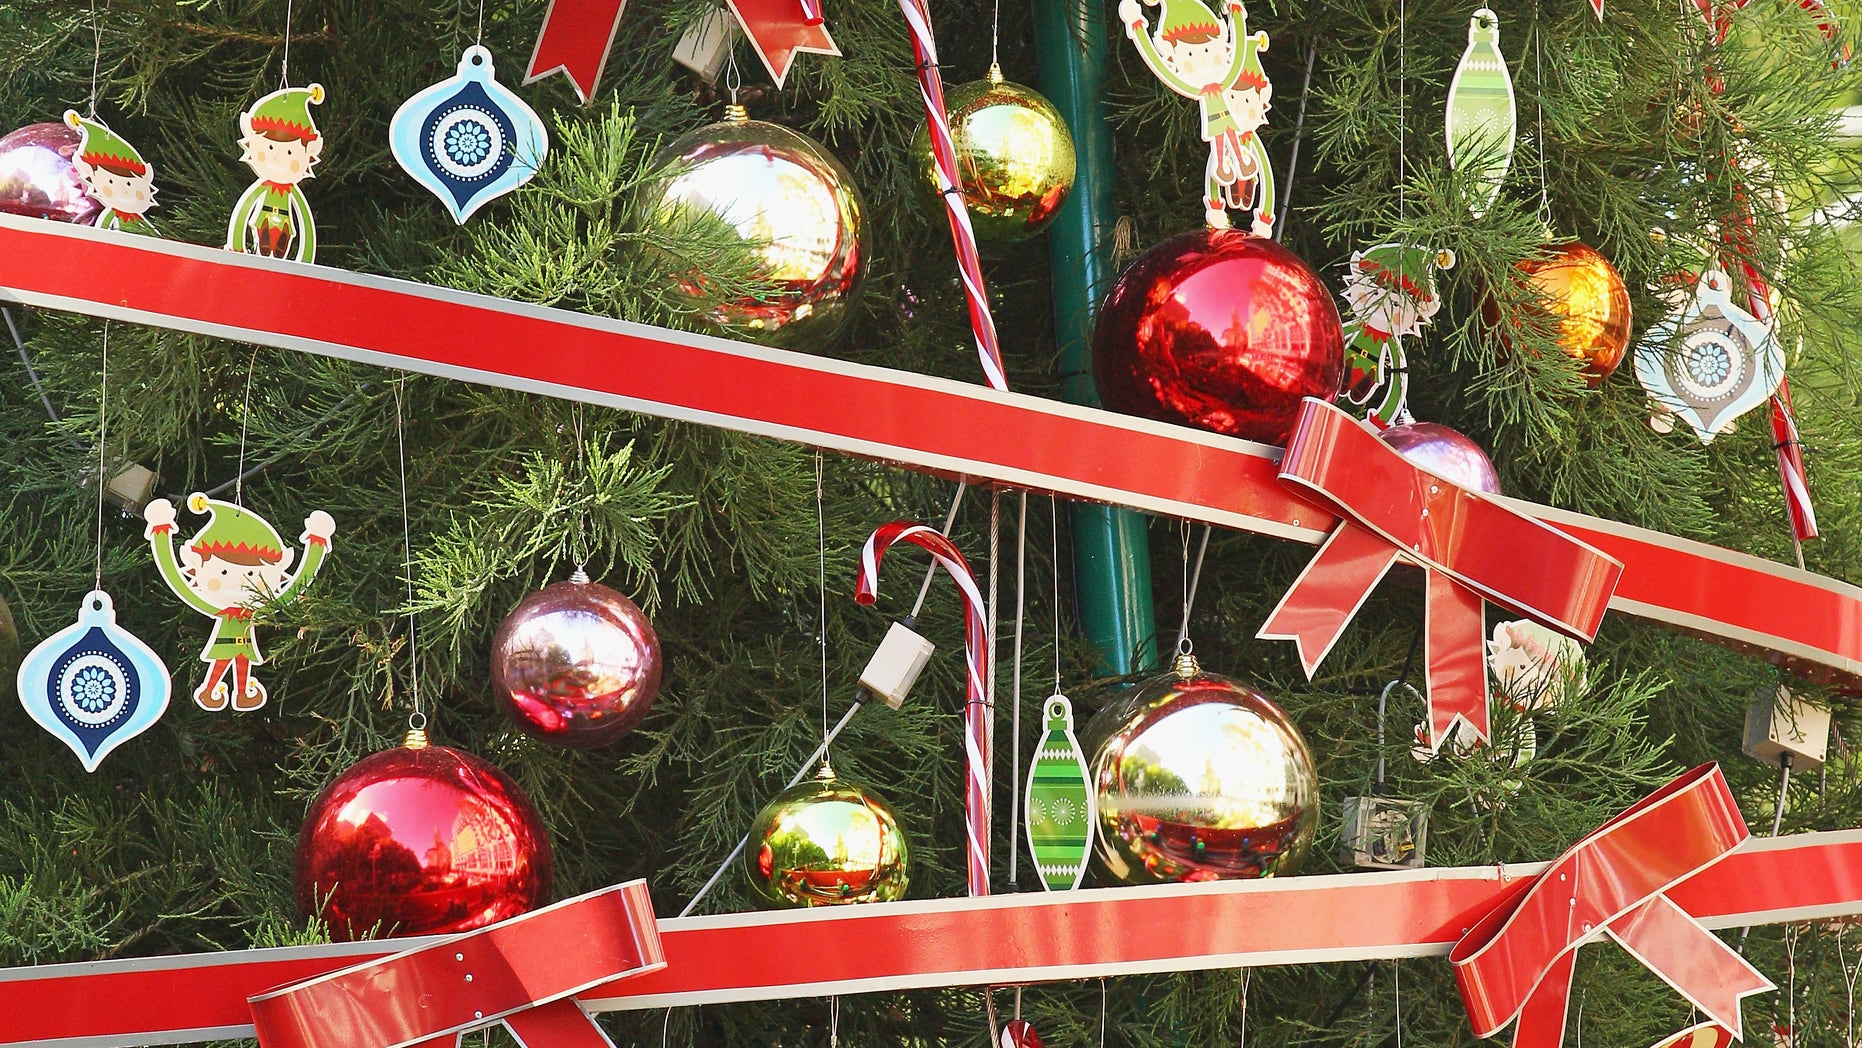 MELBOURNE, AUSTRALIA - DECEMBER 20:  Decorations adorn a large Christmas tree in Christmas Square on December 20, 2012 in Melbourne, Australia. Australian retailers are looking forward to an improved Christmas trading period when compared to recent years. Improved consumer confidence, interest rate cuts, and stabilising house prices point to a positive outlook for the current Christmas period.  (Photo by Scott Barbour/Getty Images)